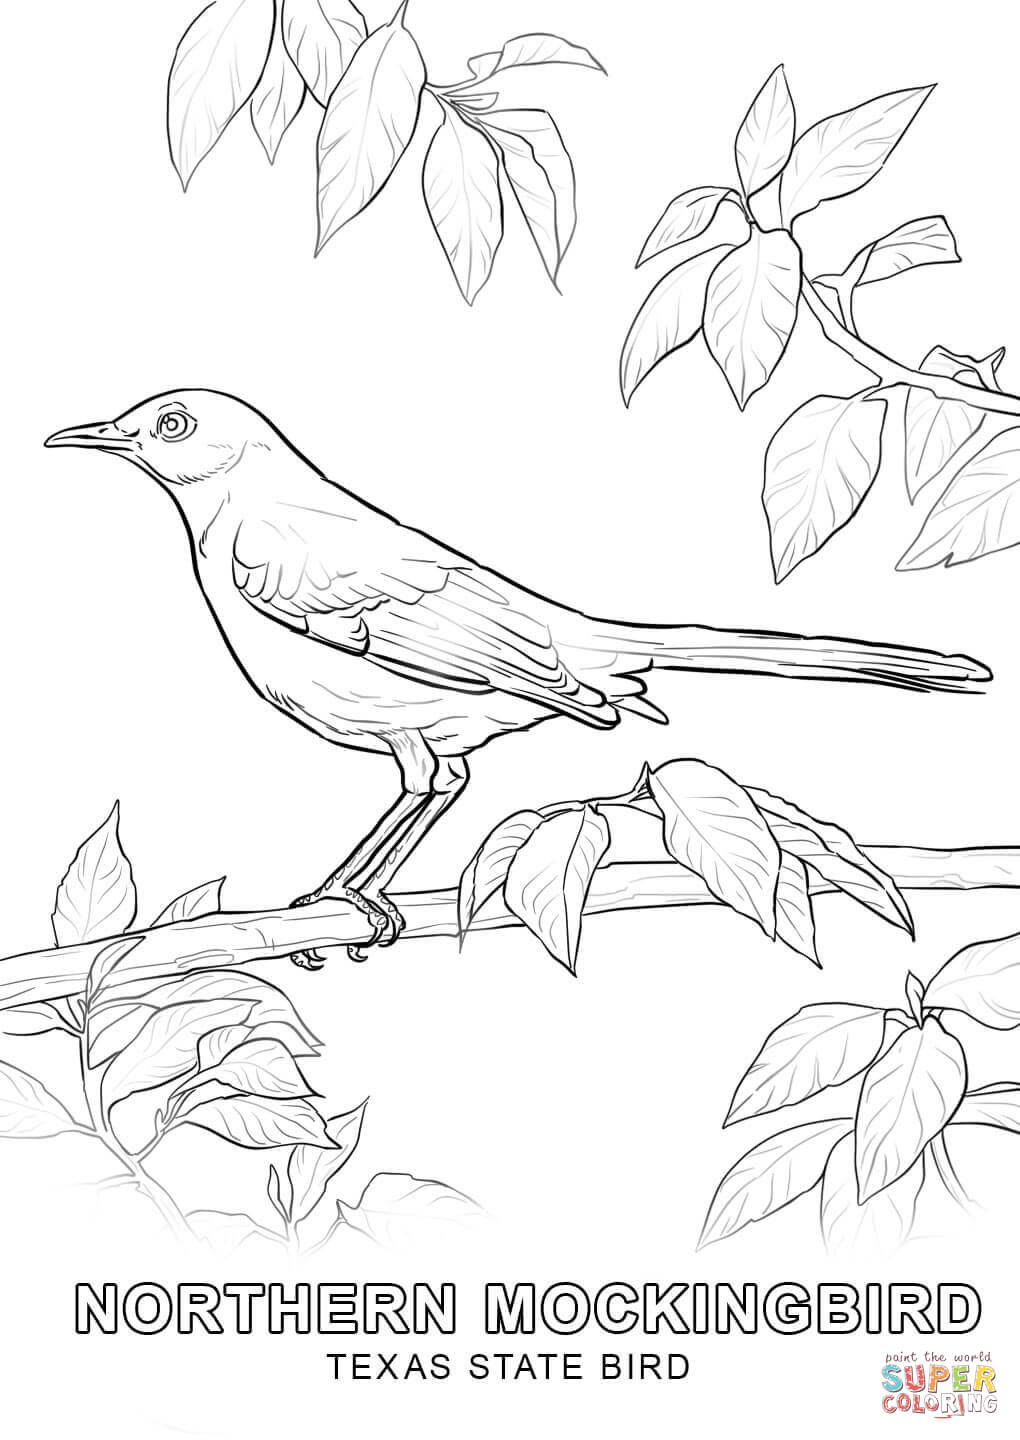 Texas State Bird coloring page.